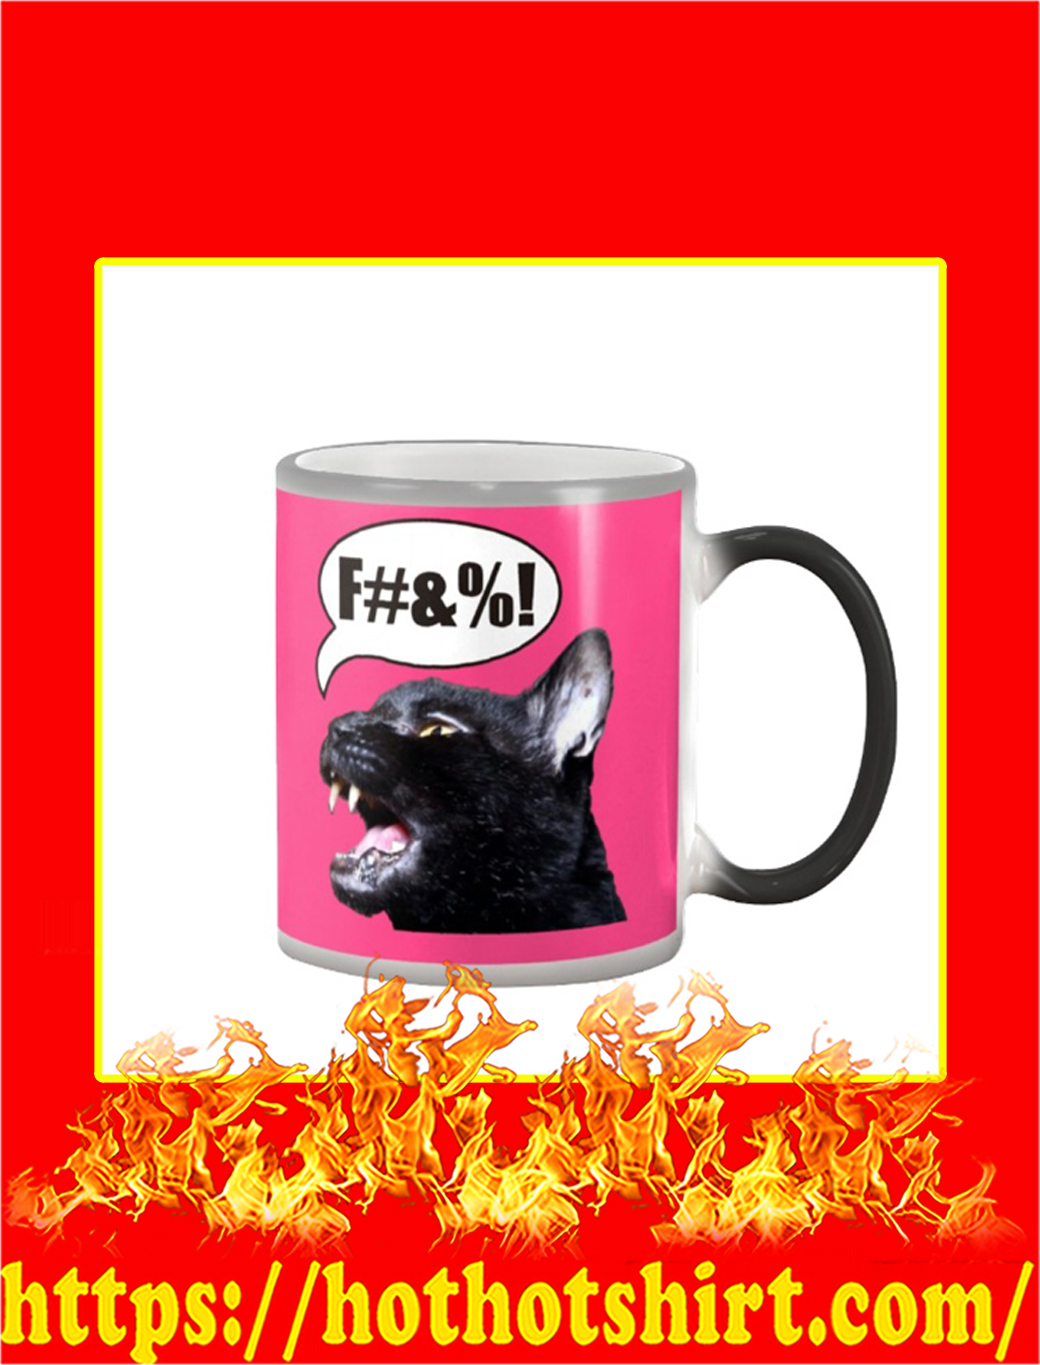 Sylvester The Talking Cat Swearing Color Changing Mug- pink